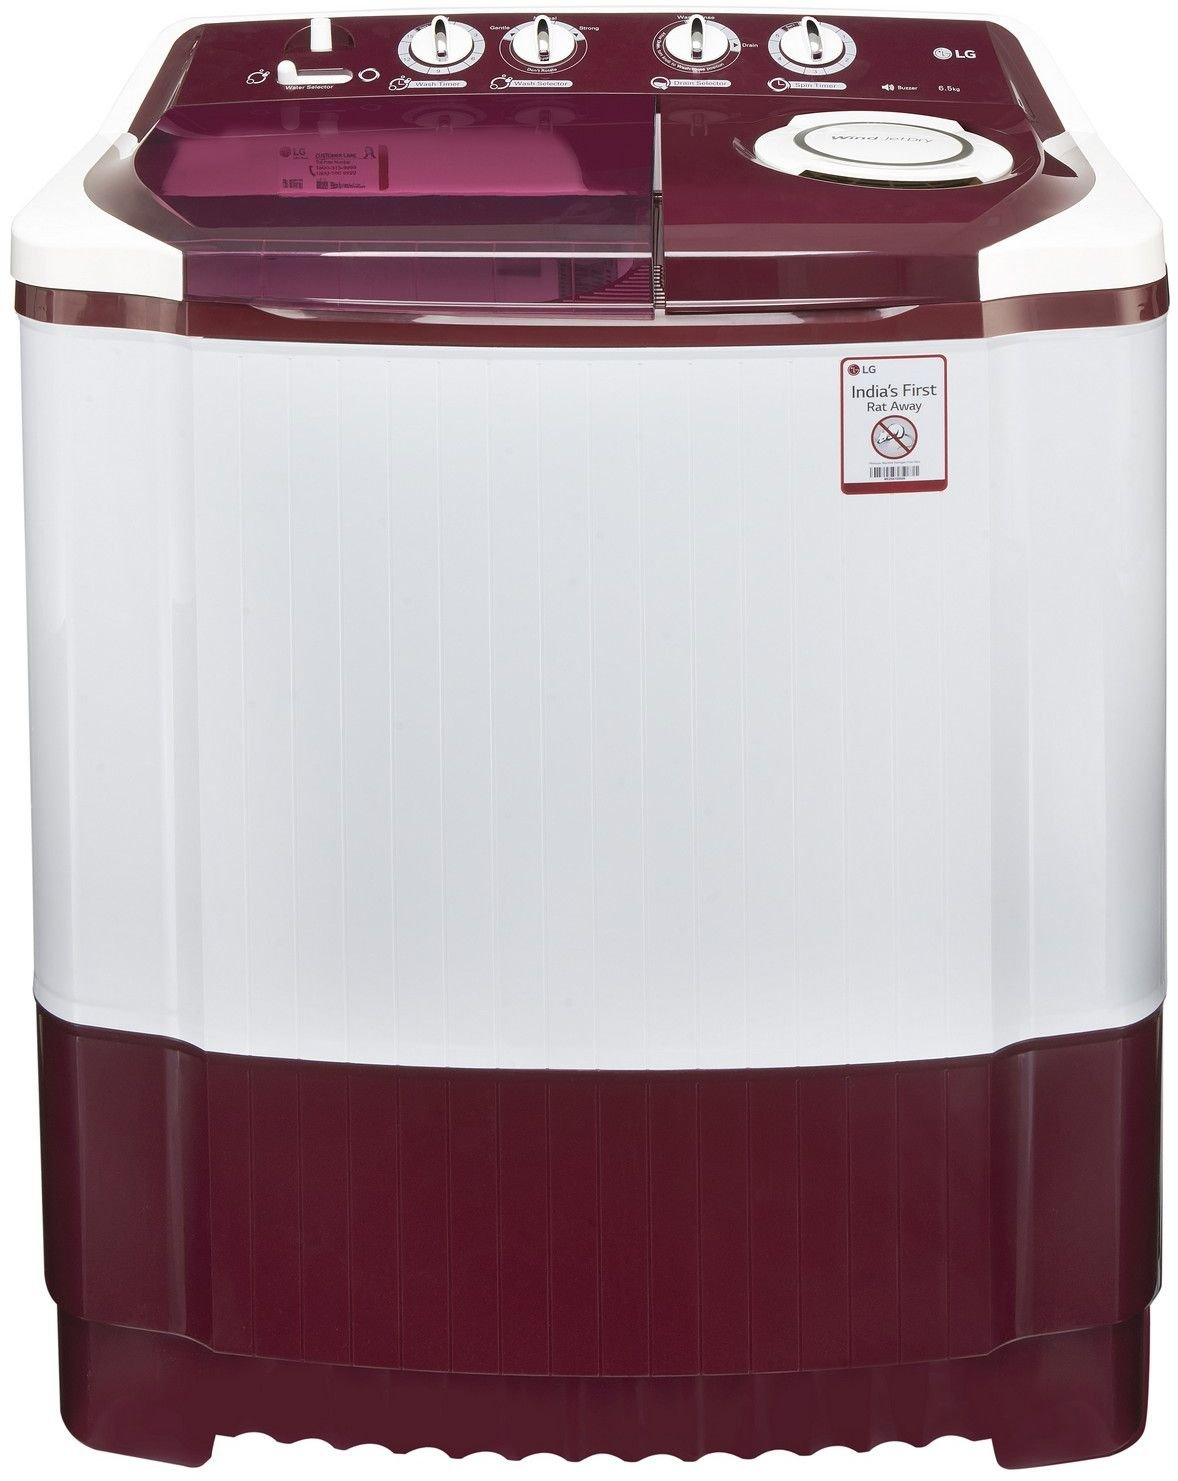 Best LG Washing Machine under 15000 in India 2020